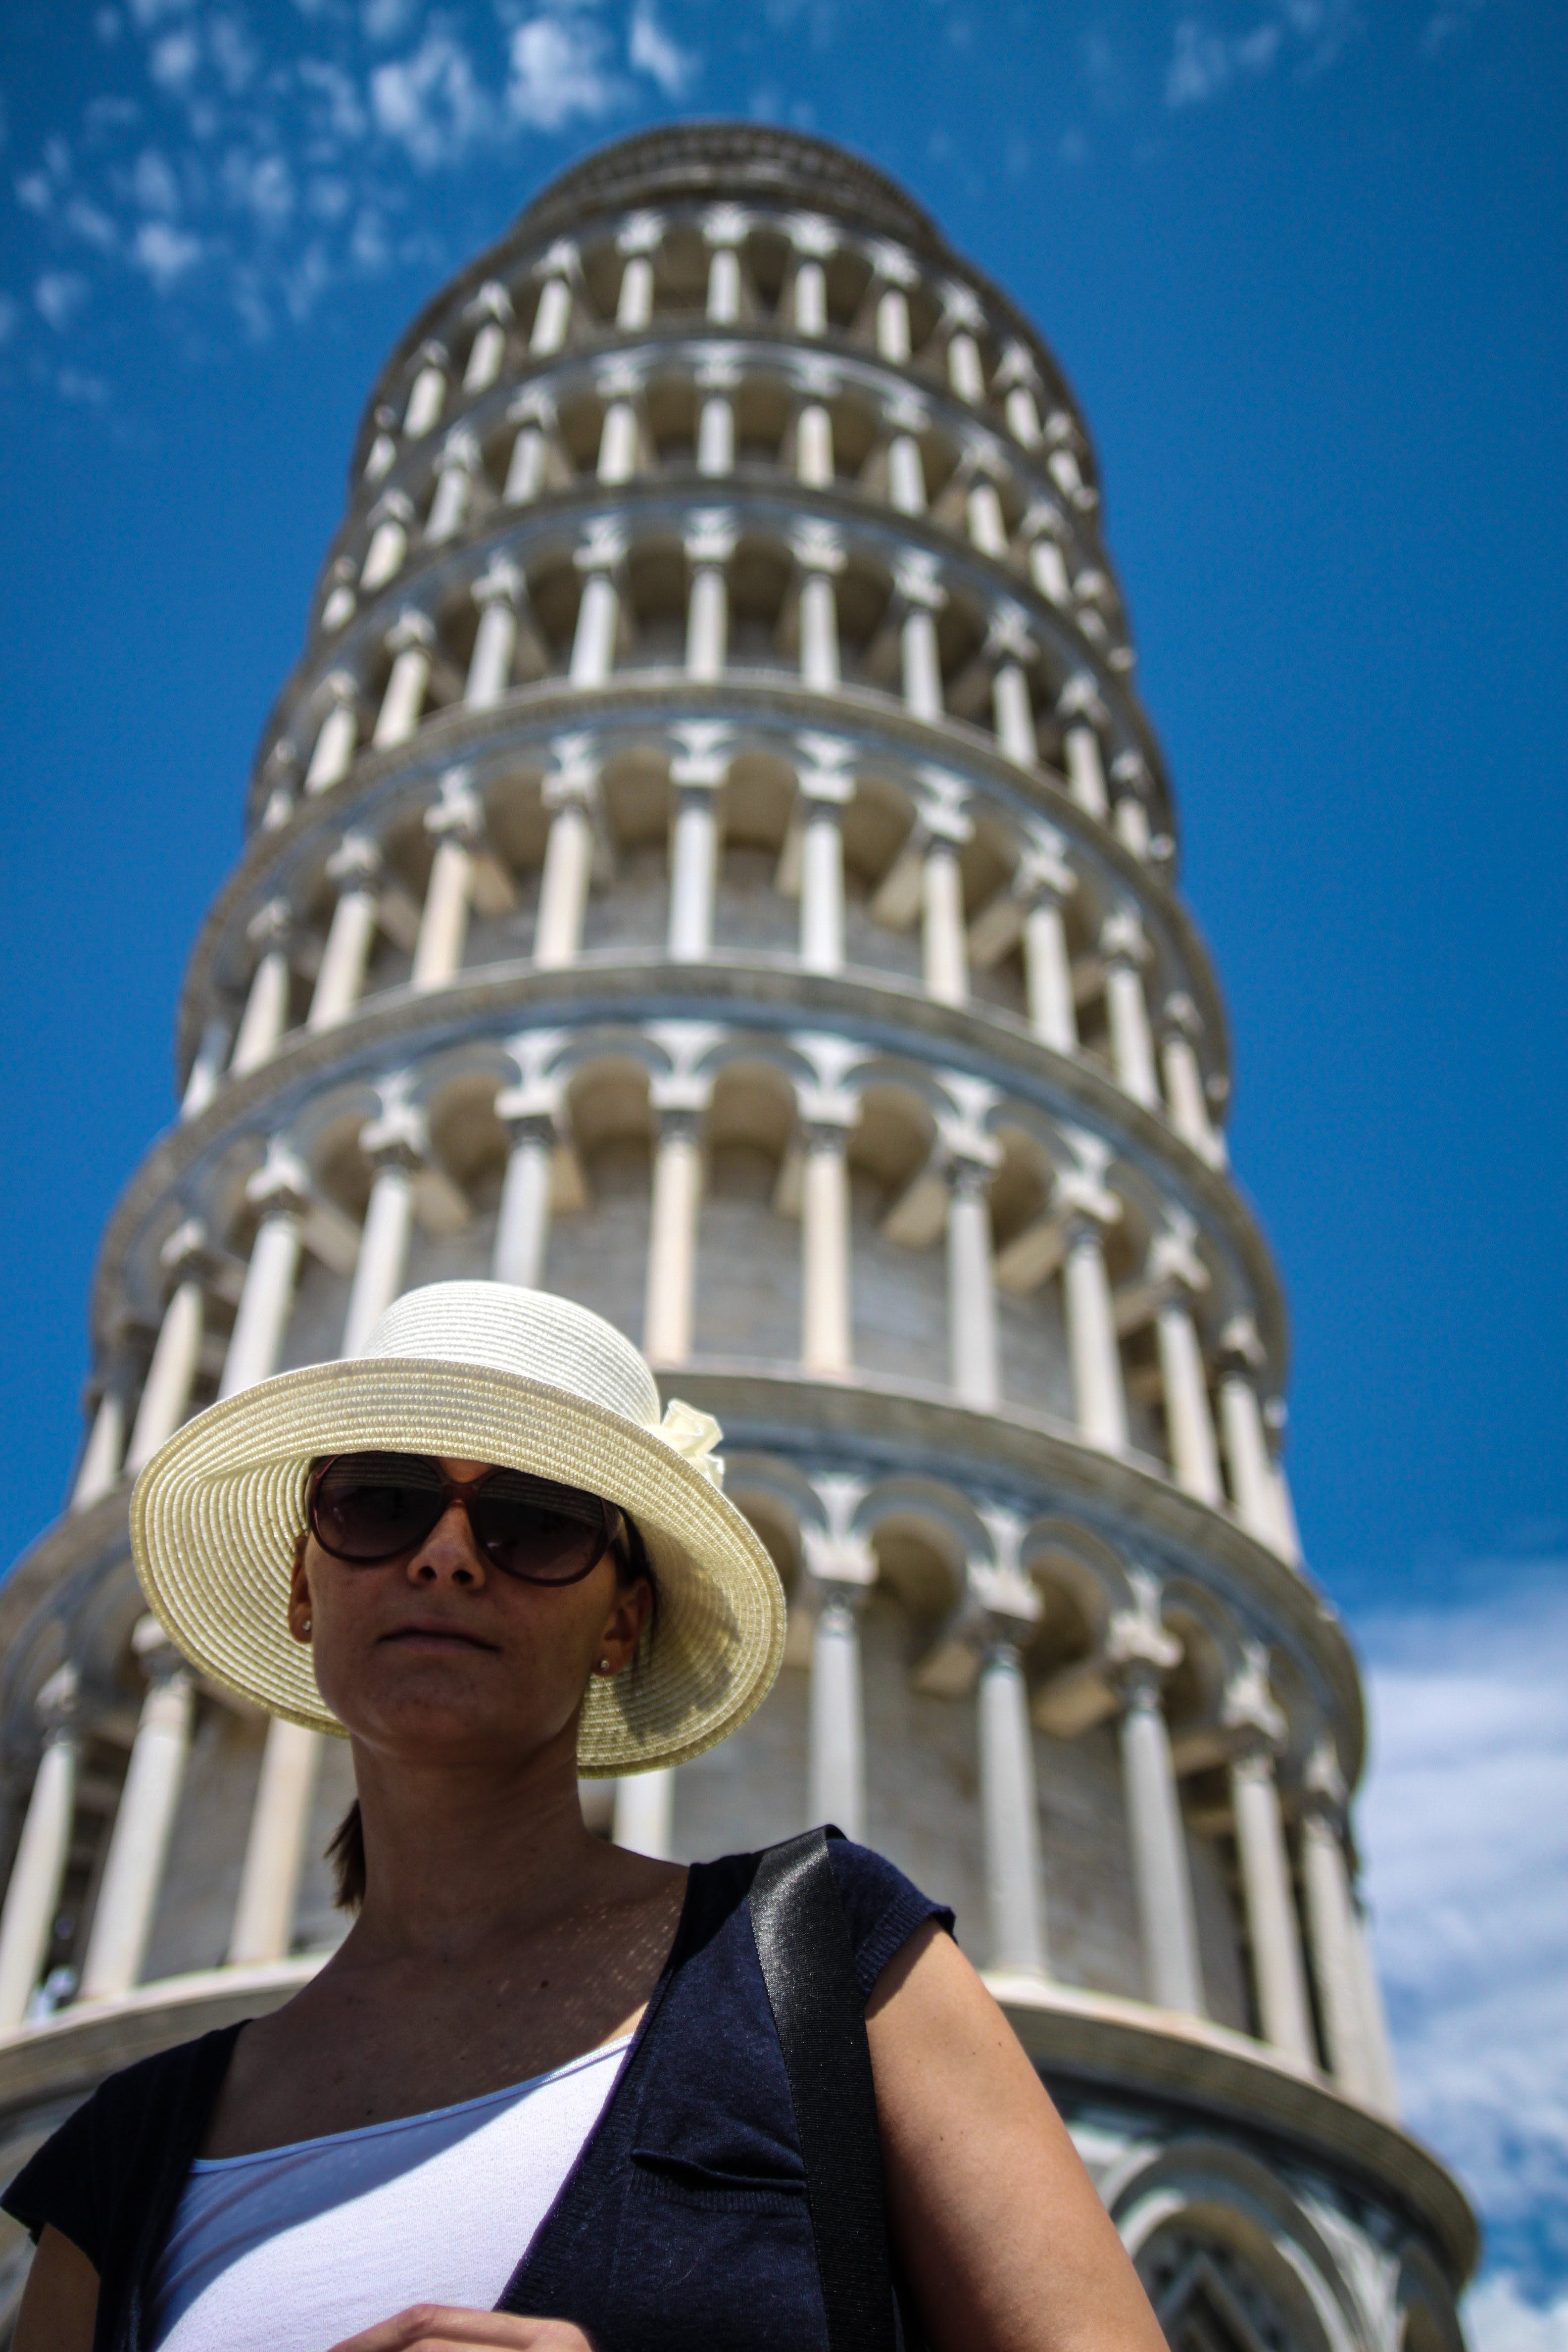 Free stock photo of hat, leaning tower of pisa, tourist, woman